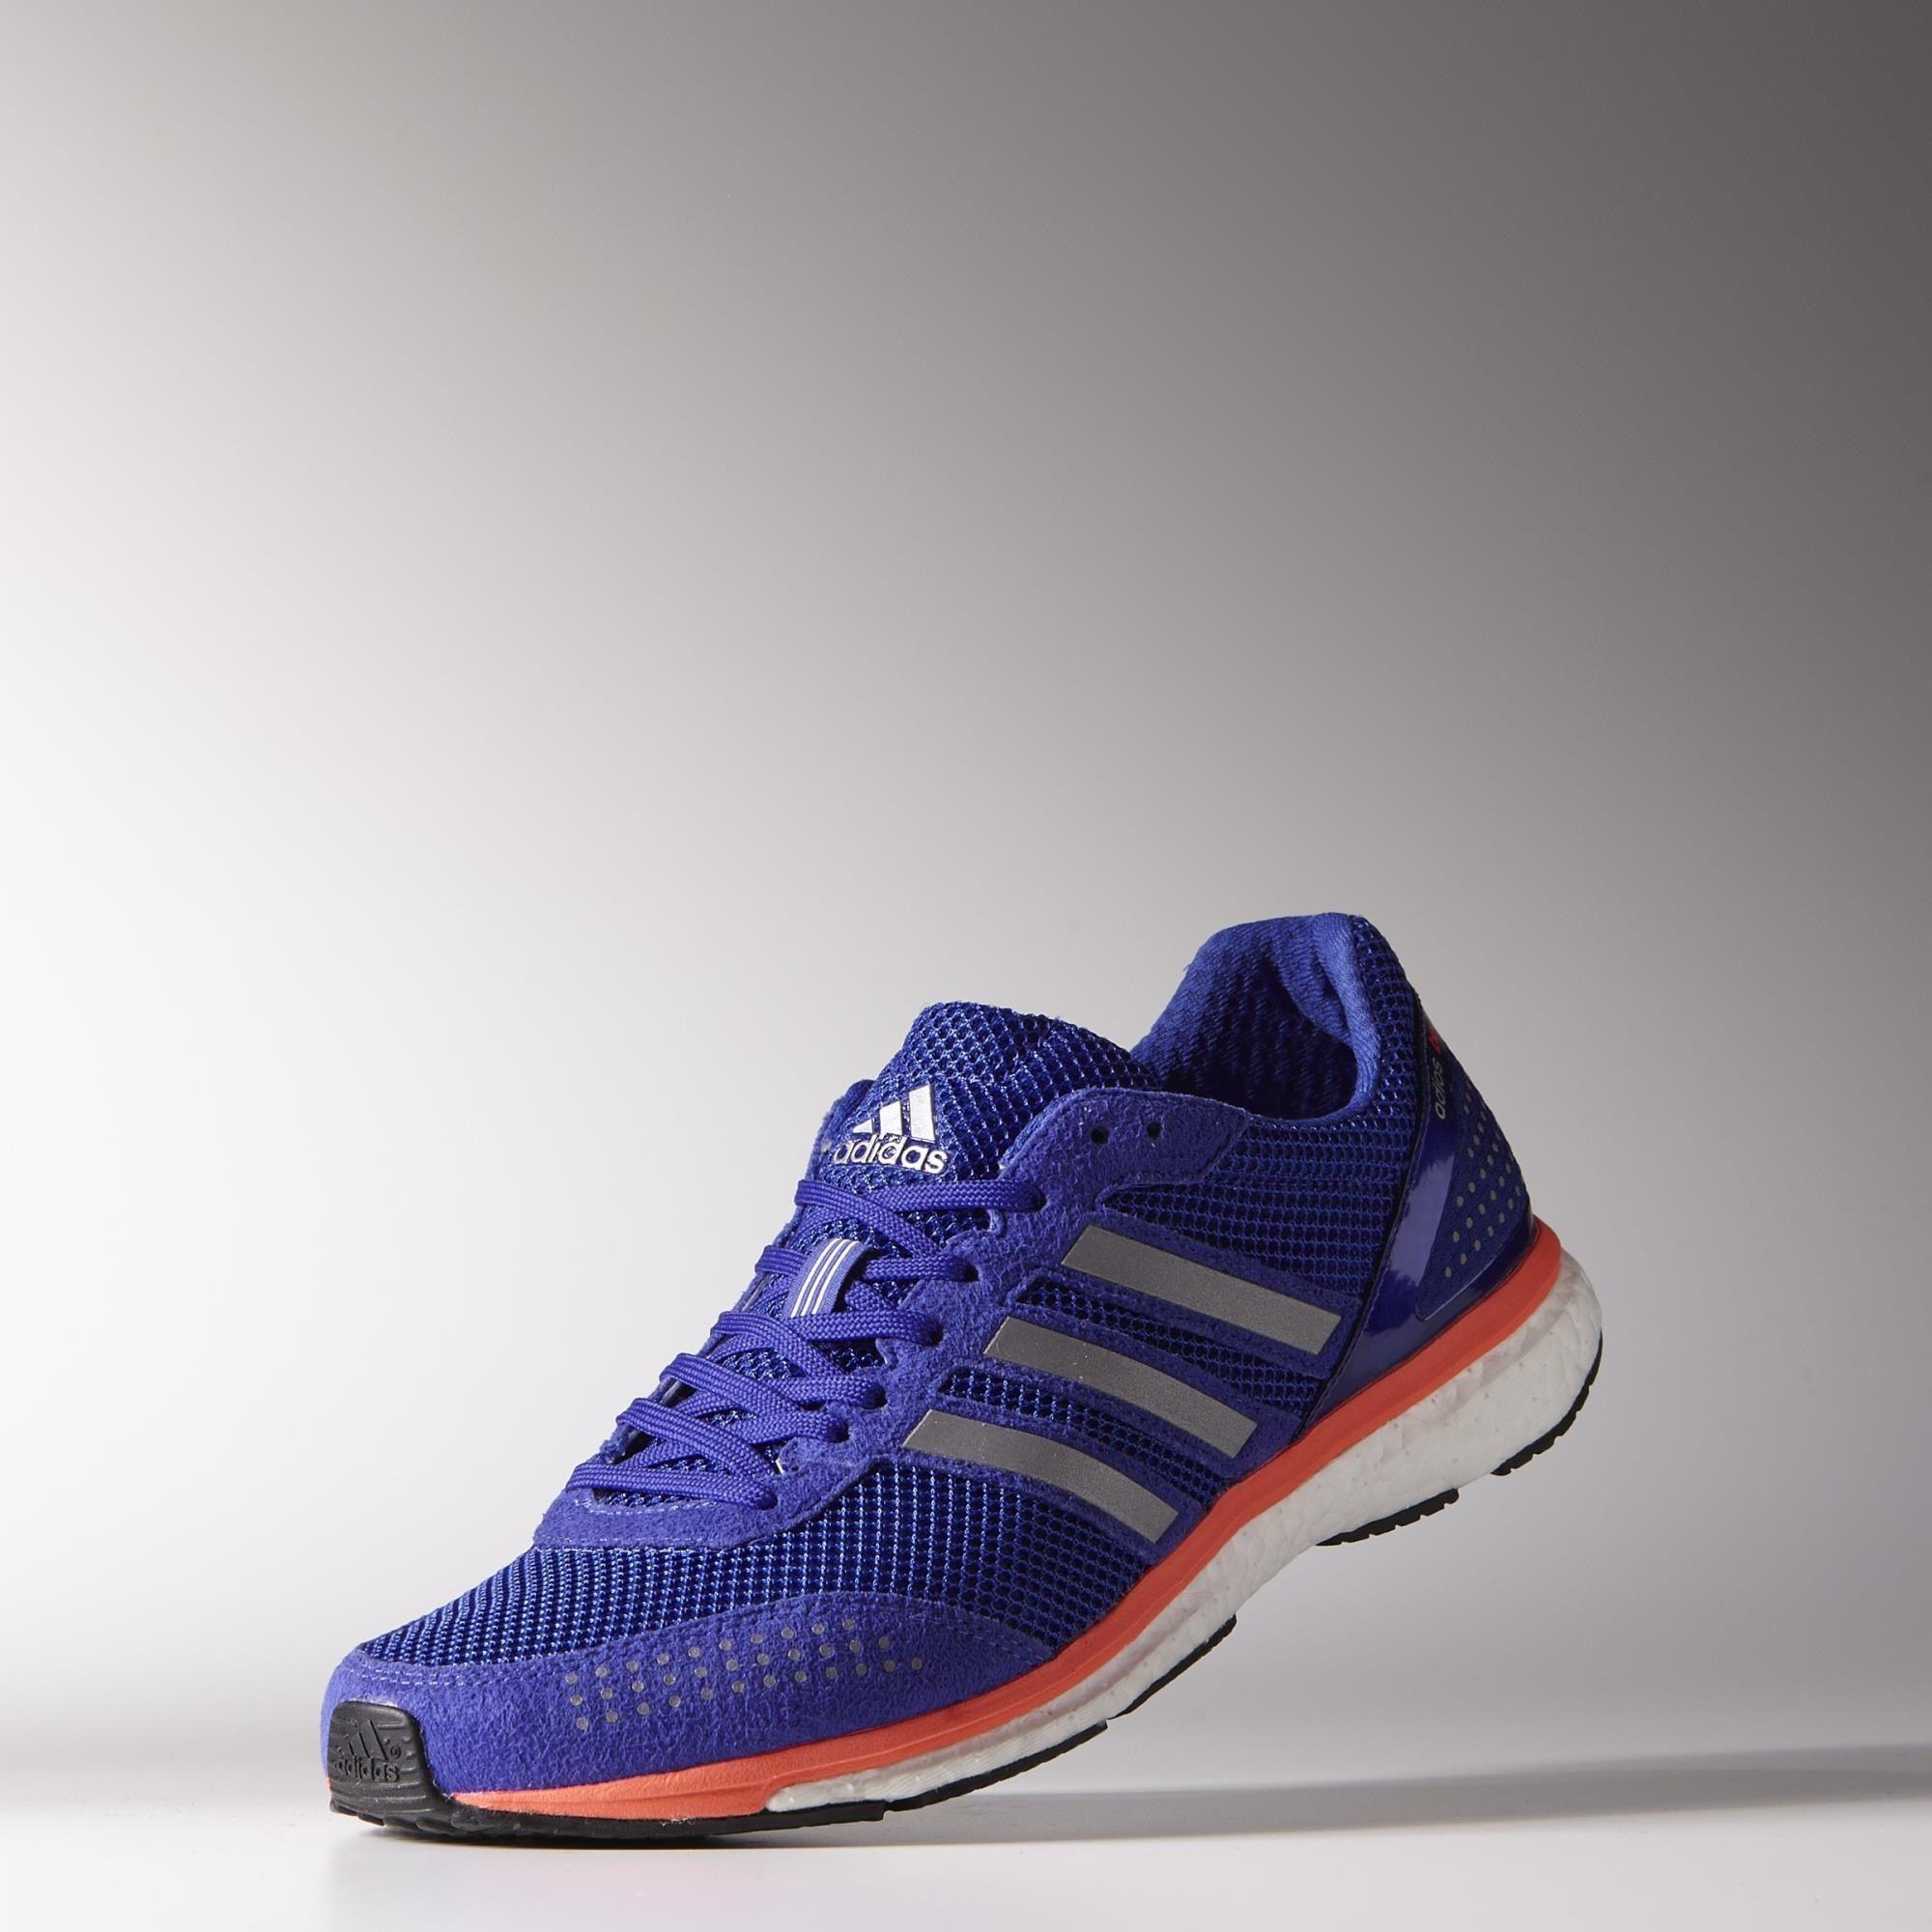 Adidas Mens Adizero Adios Boost 2.0 Running Shoes - Night